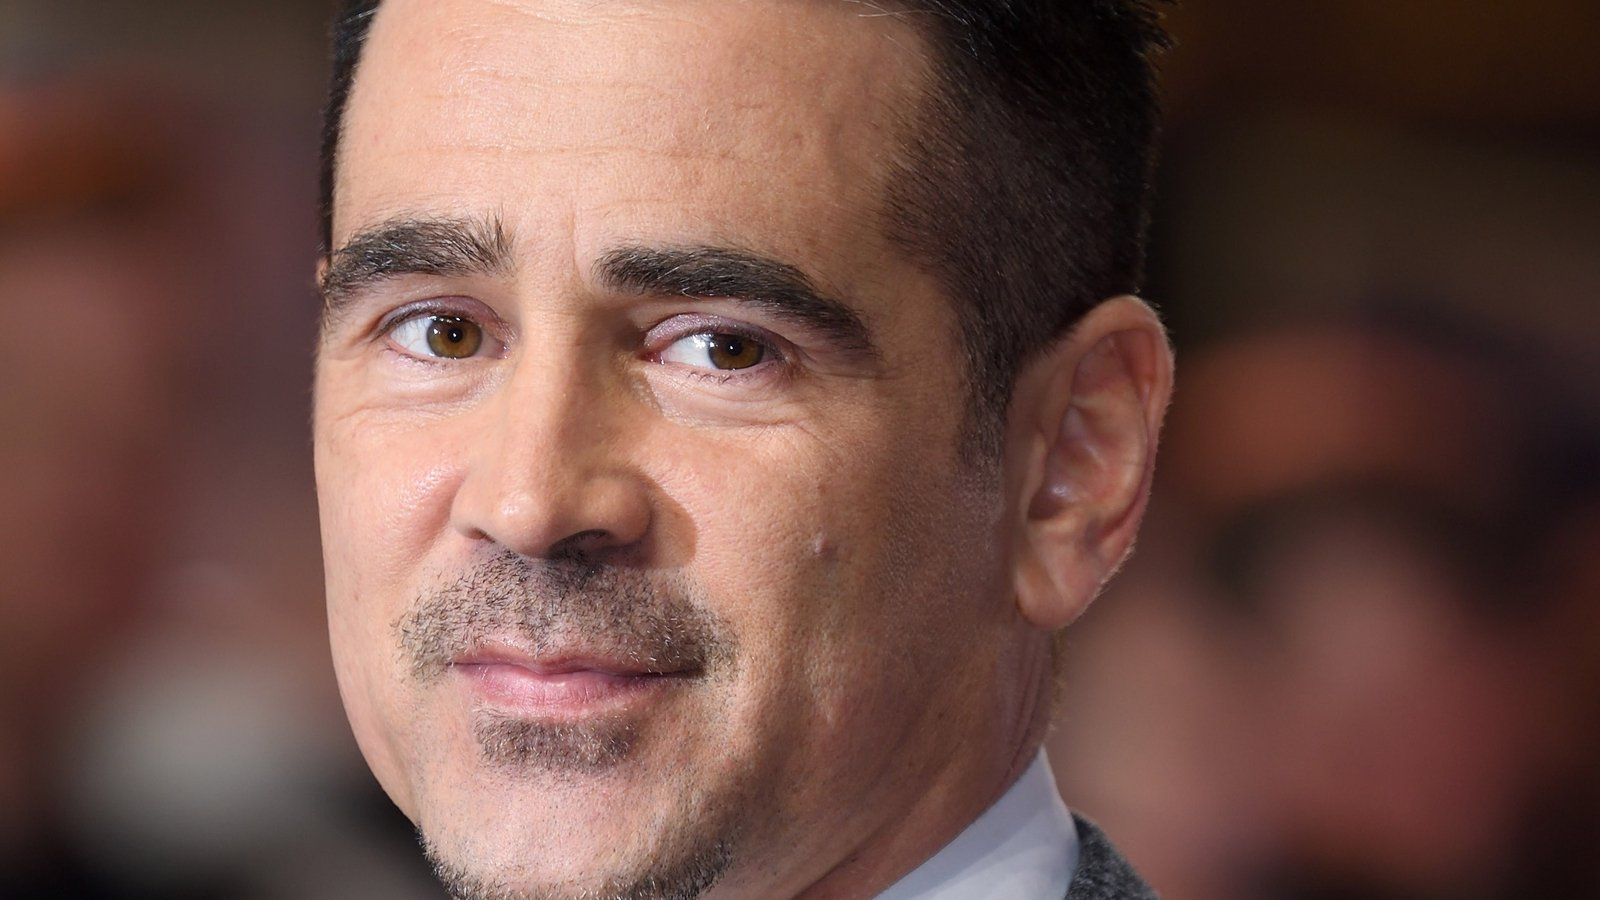 Colin Farrell staying tight-lipped about The Batman